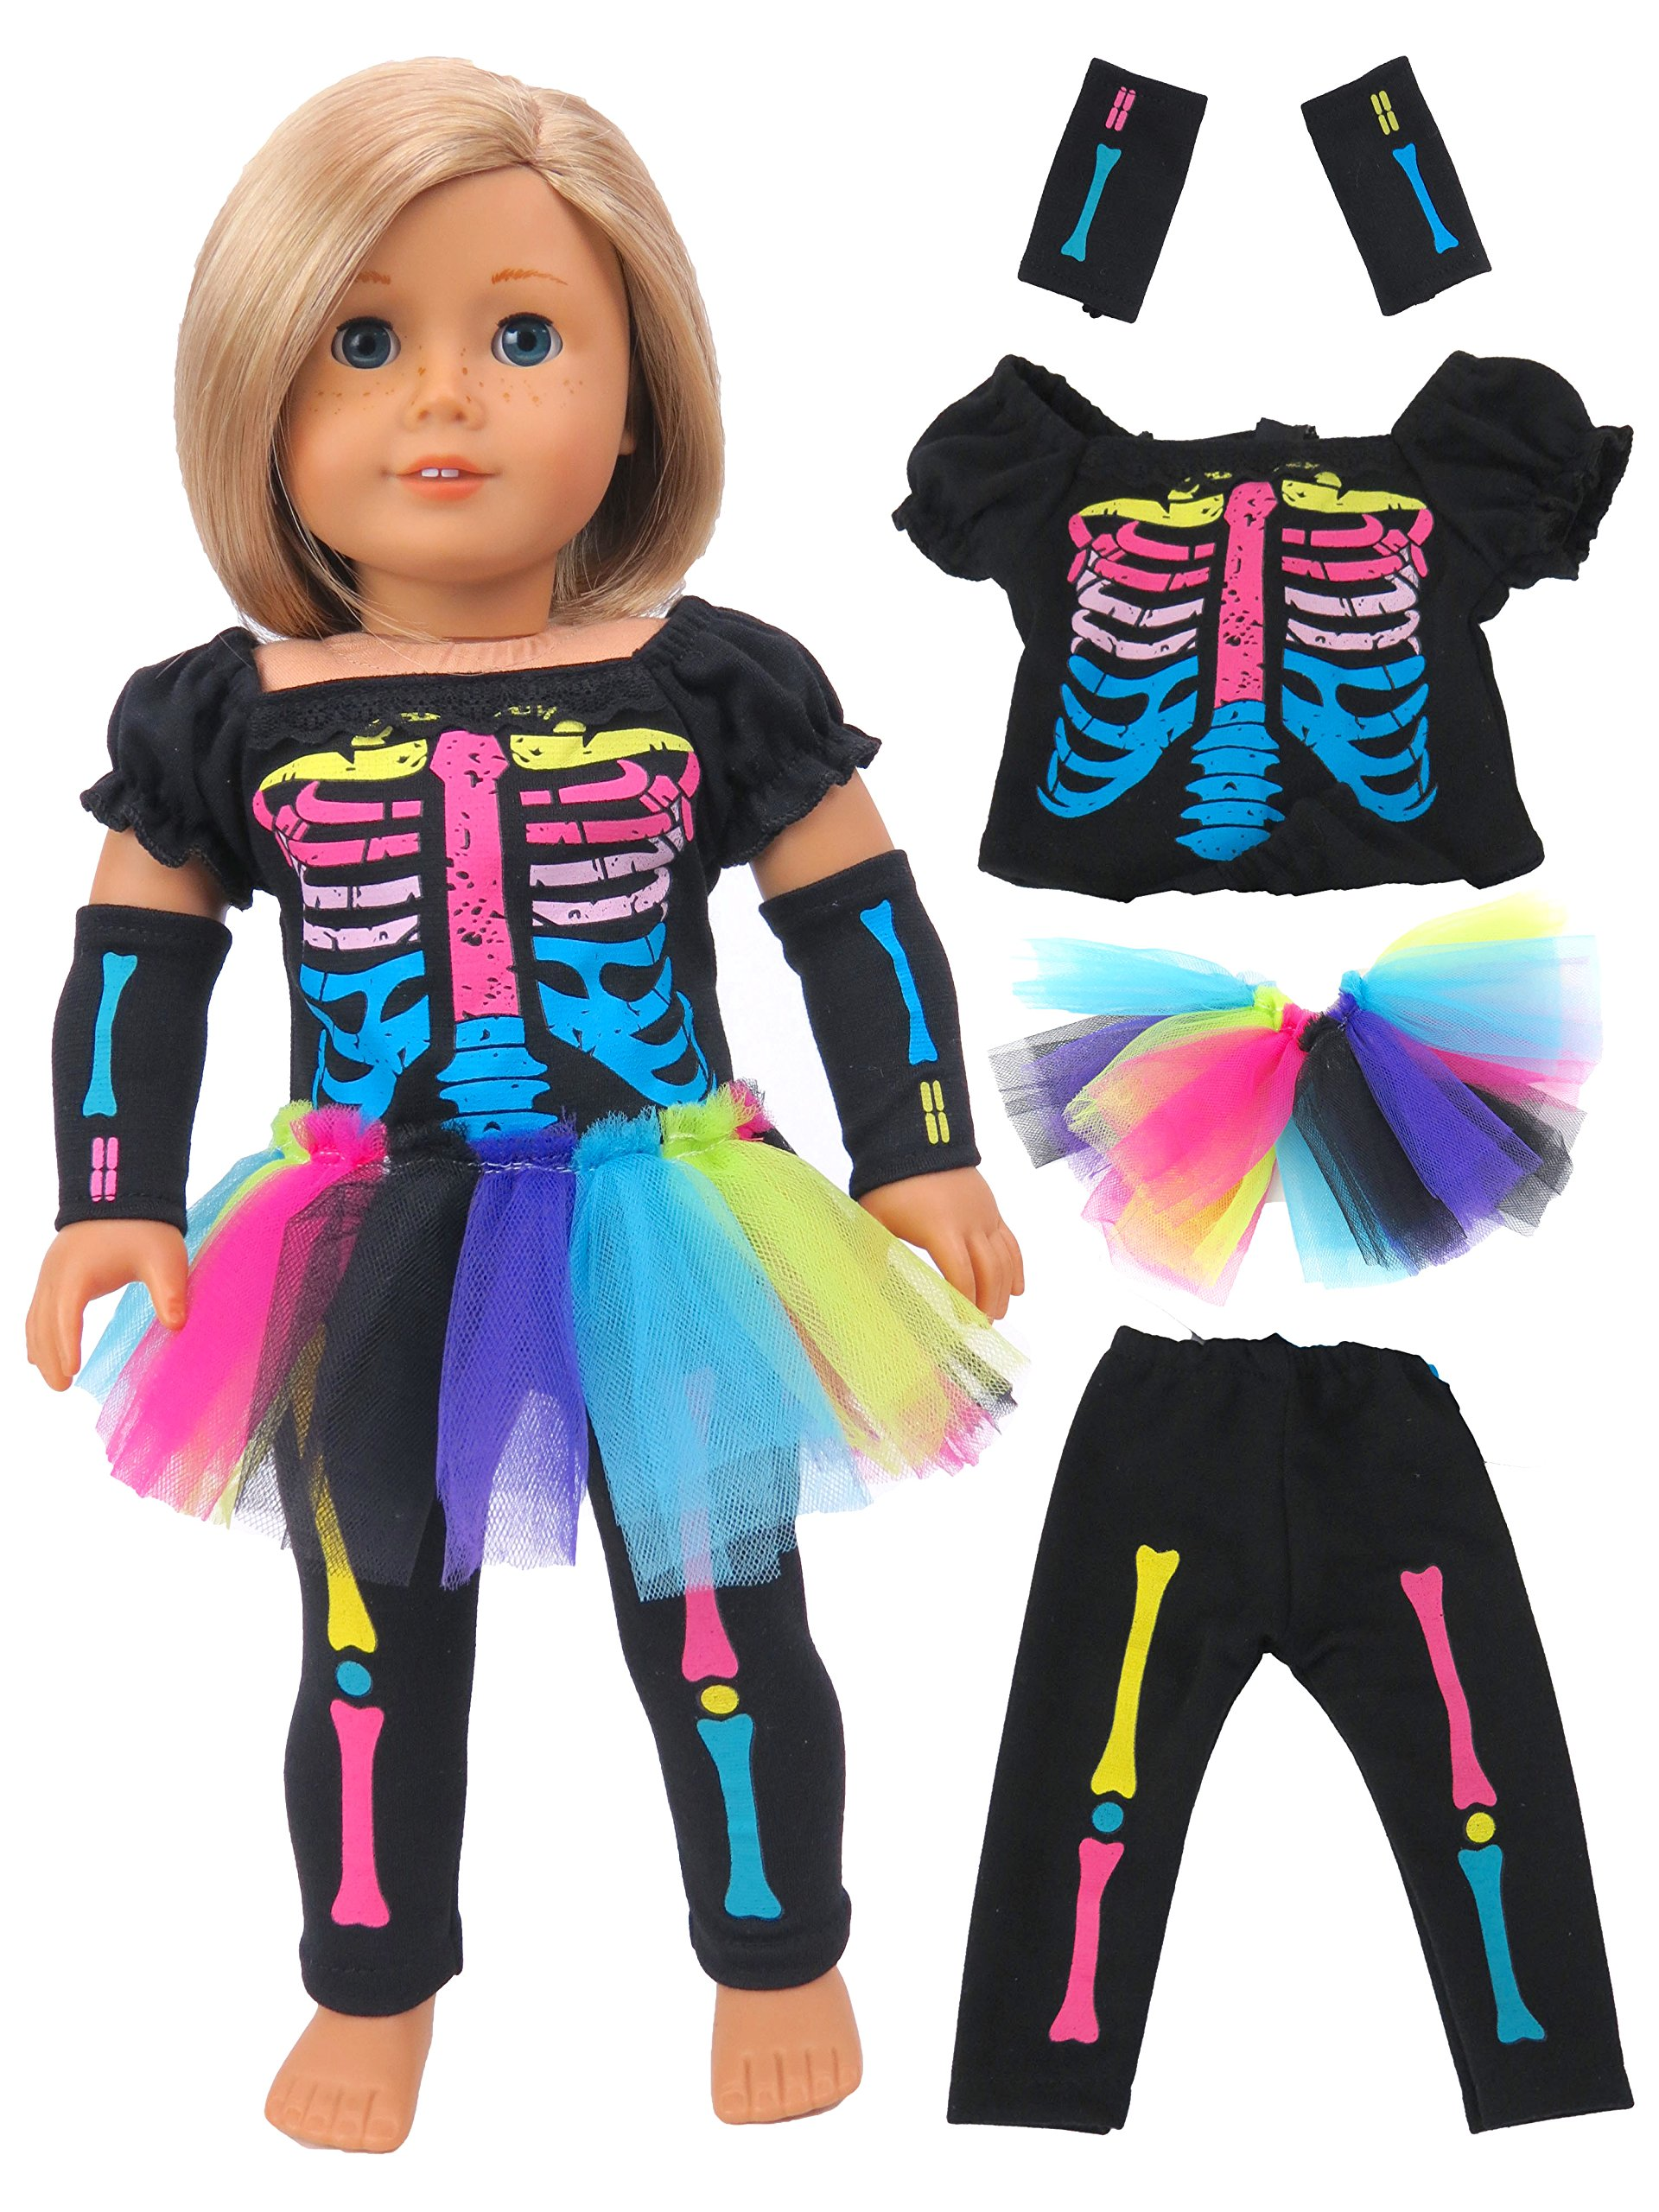 Electric Neon Skeleton Girl Halloween Costume | Fits 18'' American Girl Dolls, Madame Alexander, Our Generation, etc. | 18 Inch Doll Clothes